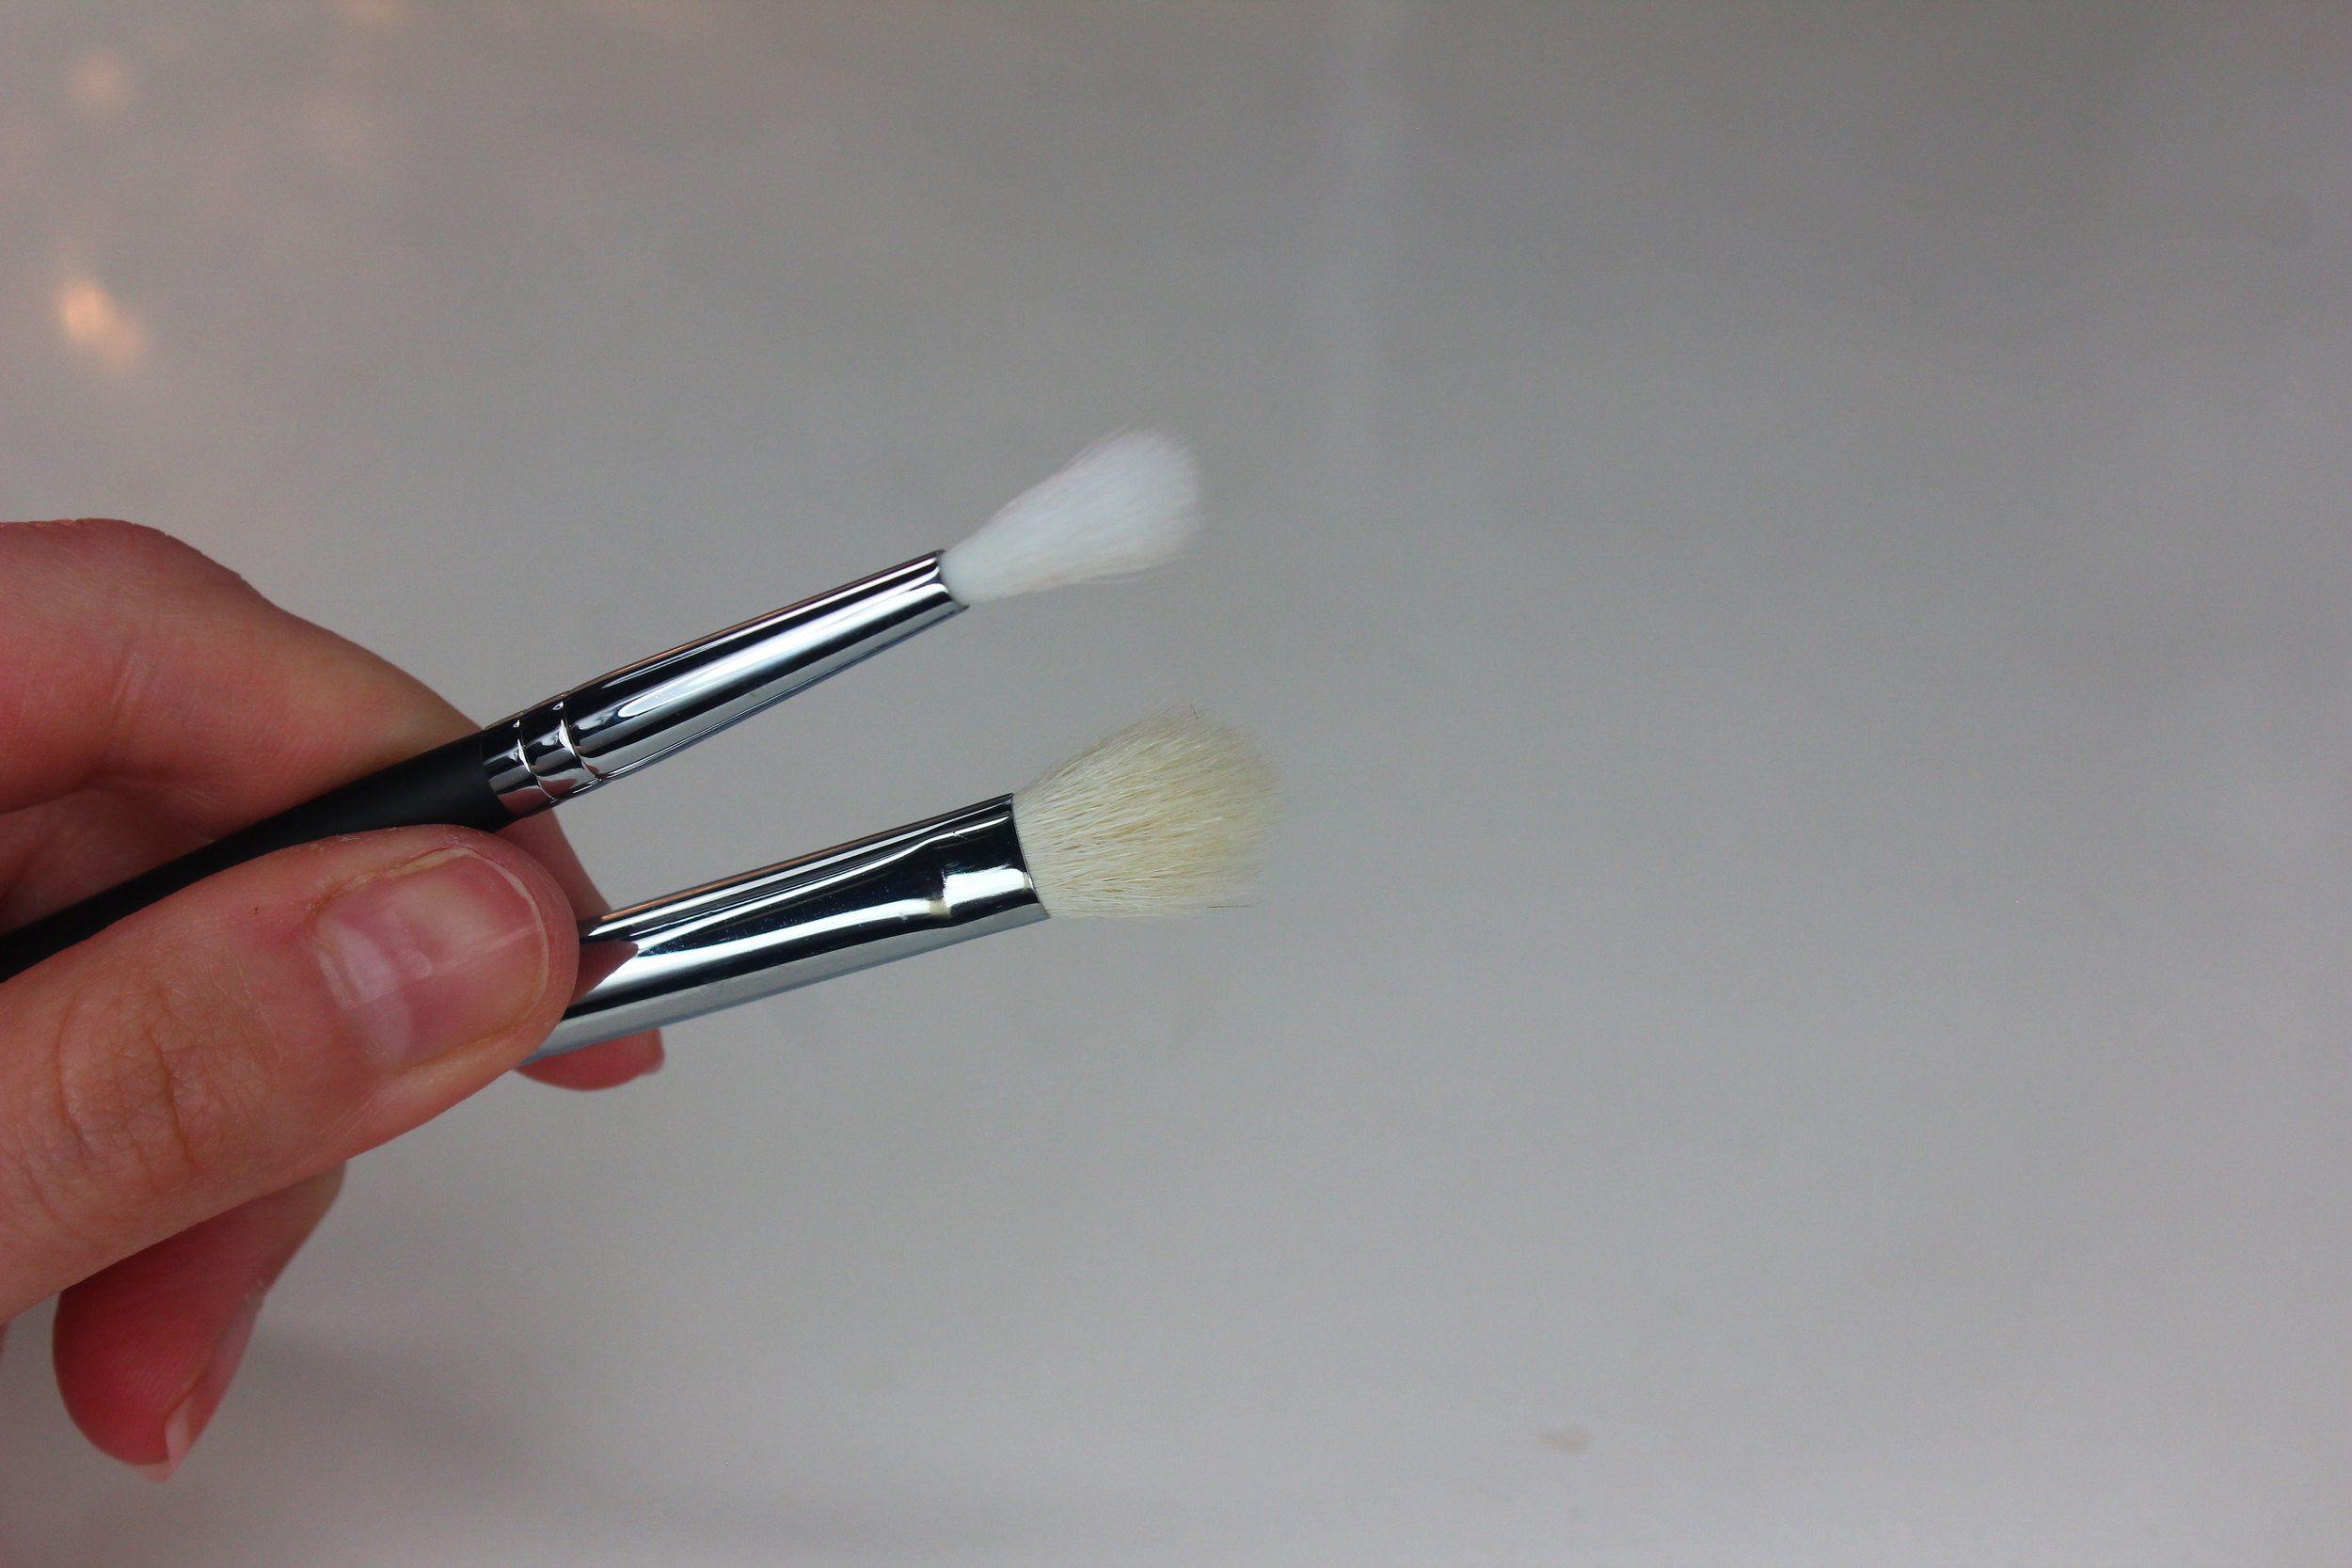 Morphe Brushes 3 - M562 Tiny Crease Blender